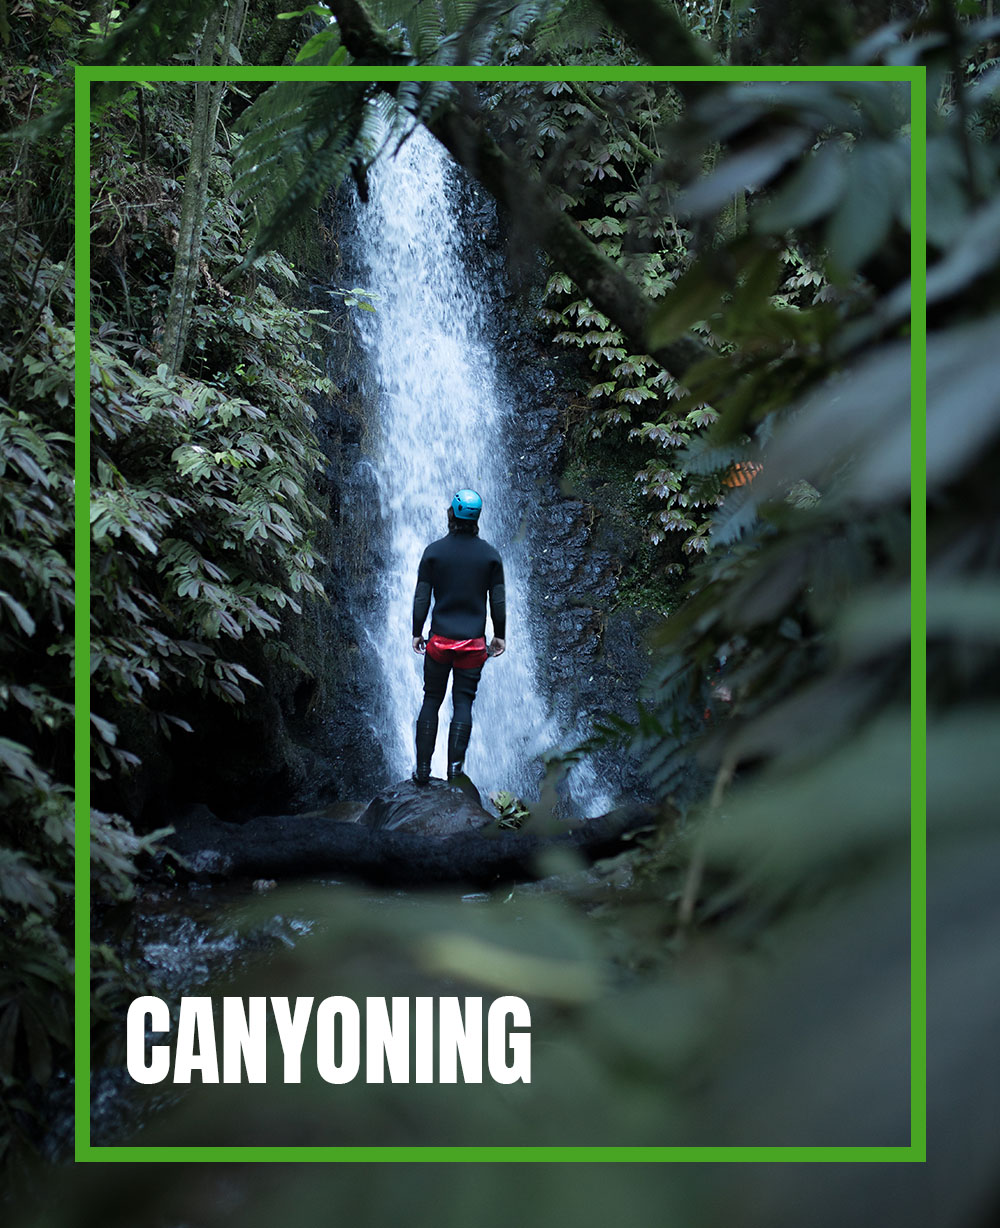 CANYONING UPDATE